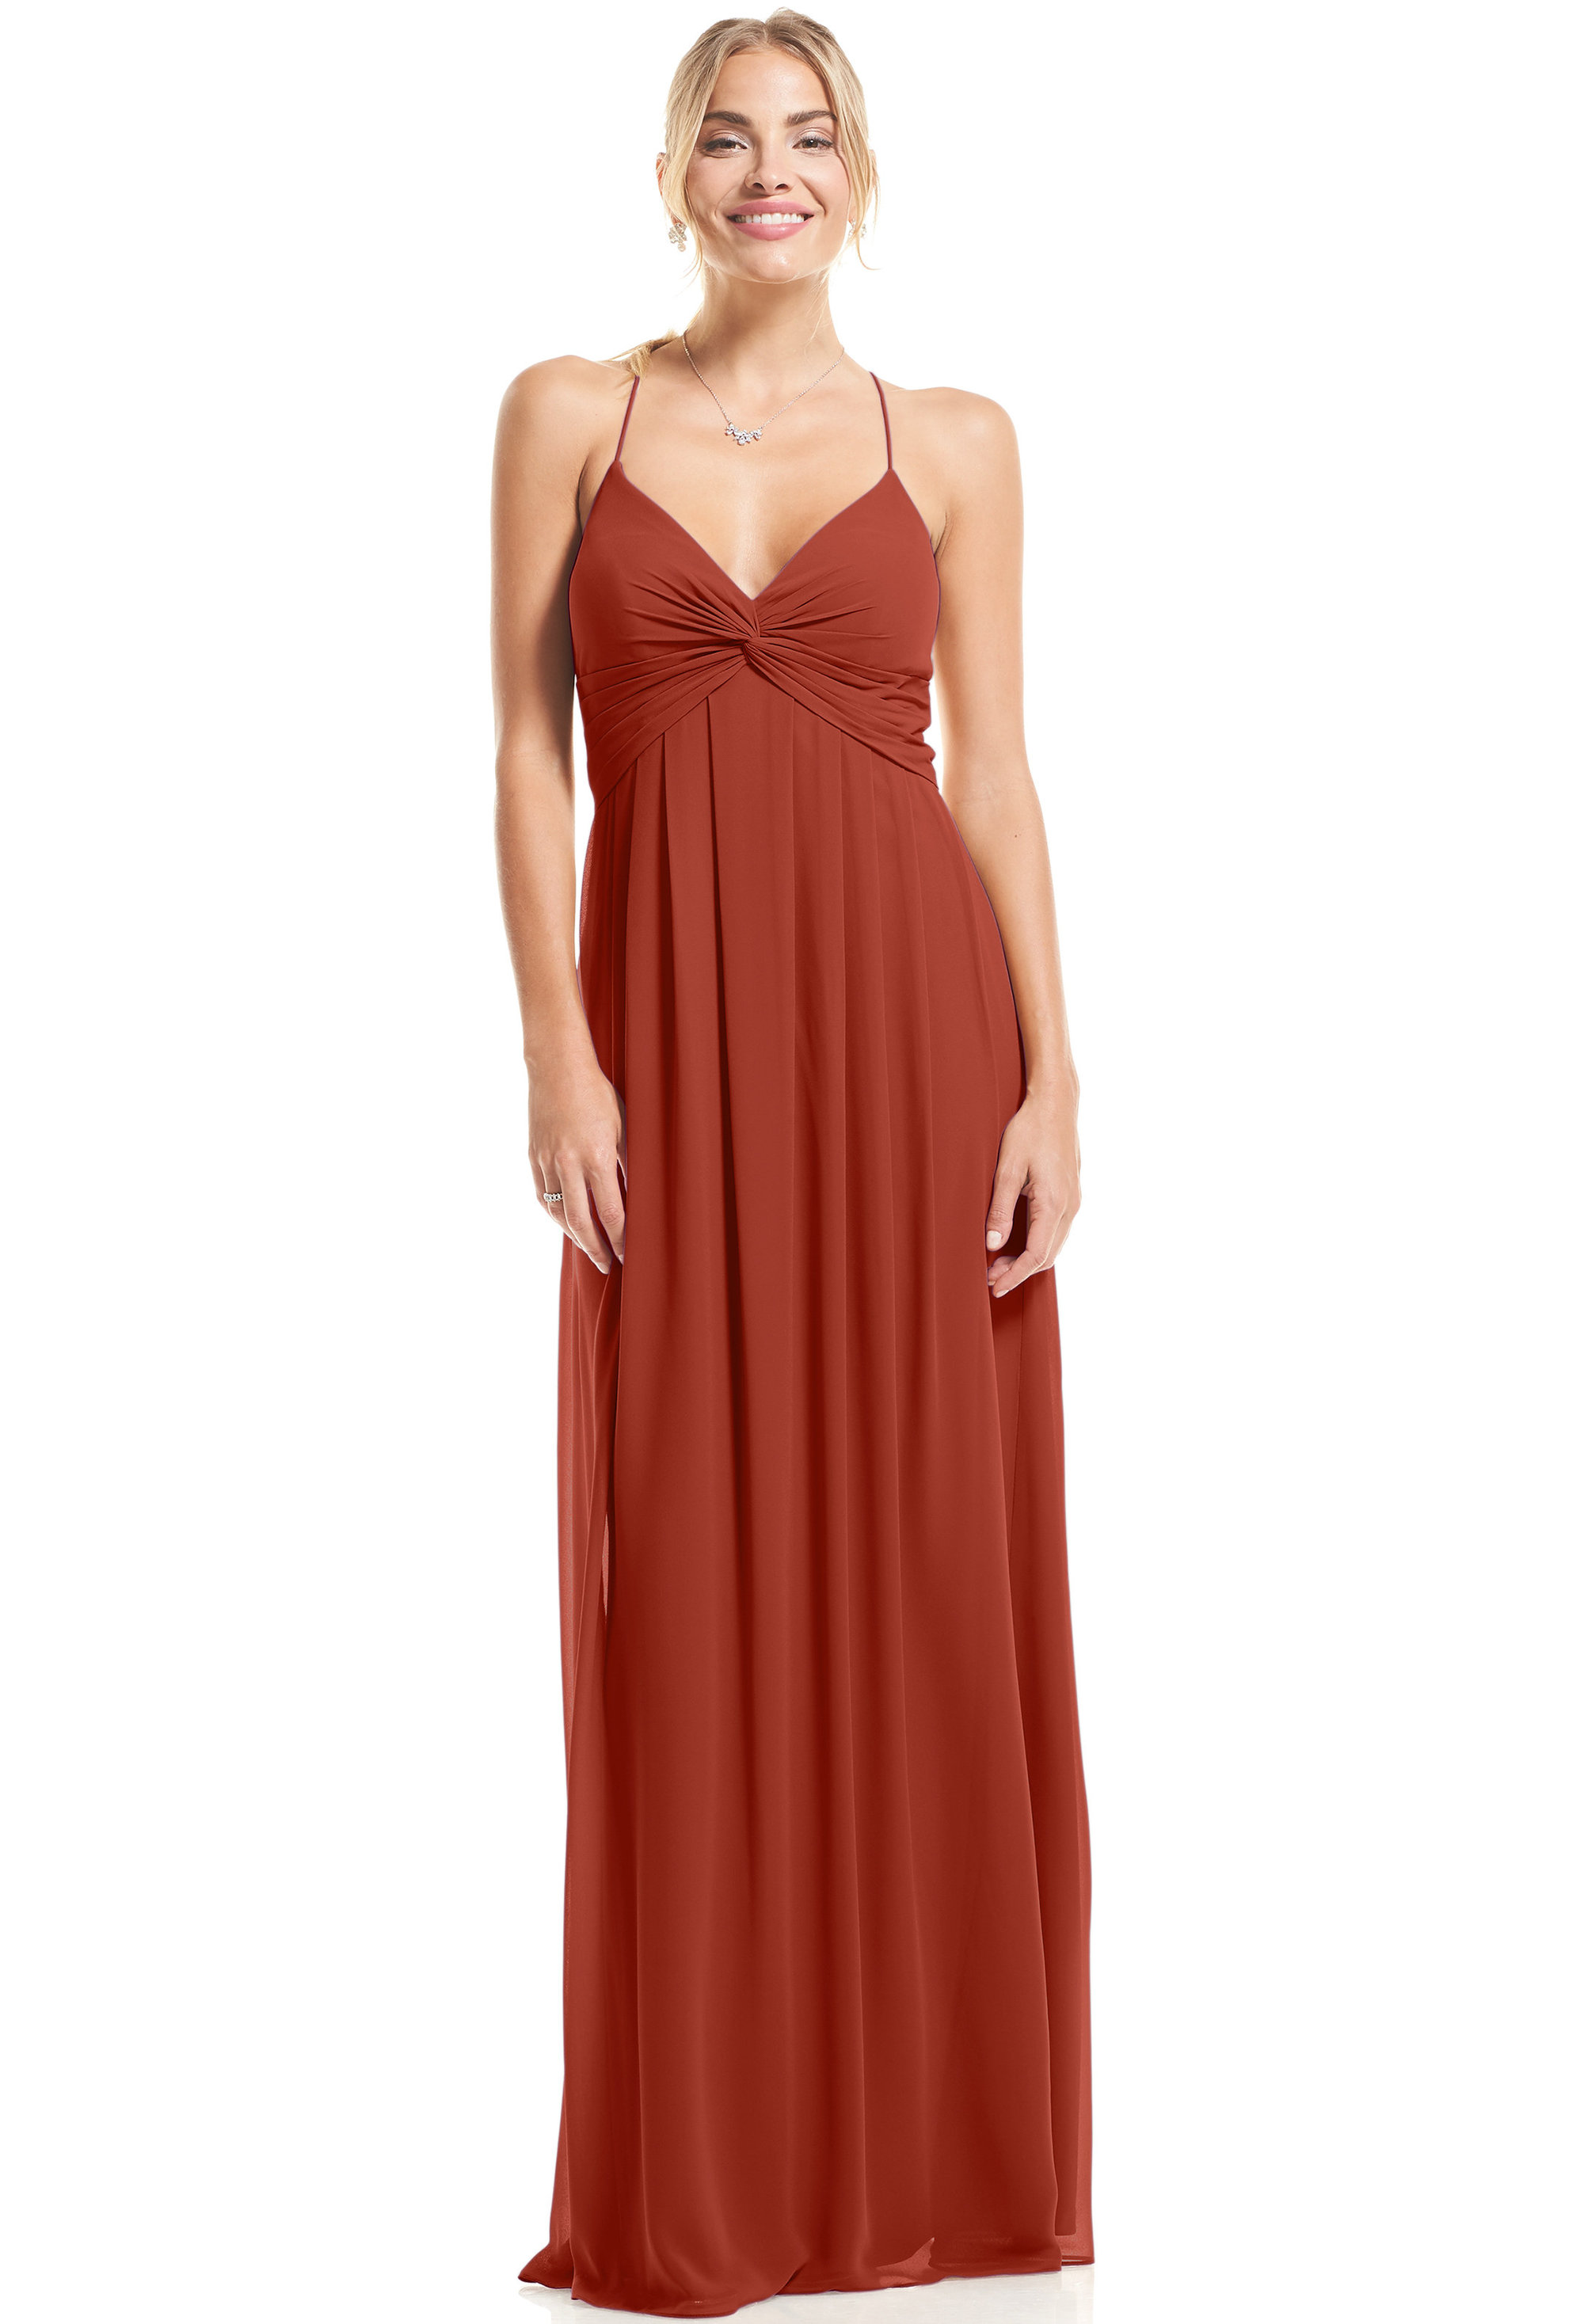 Bill Levkoff RUST Chiffon V-neck A-Line gown, $89.00 Front